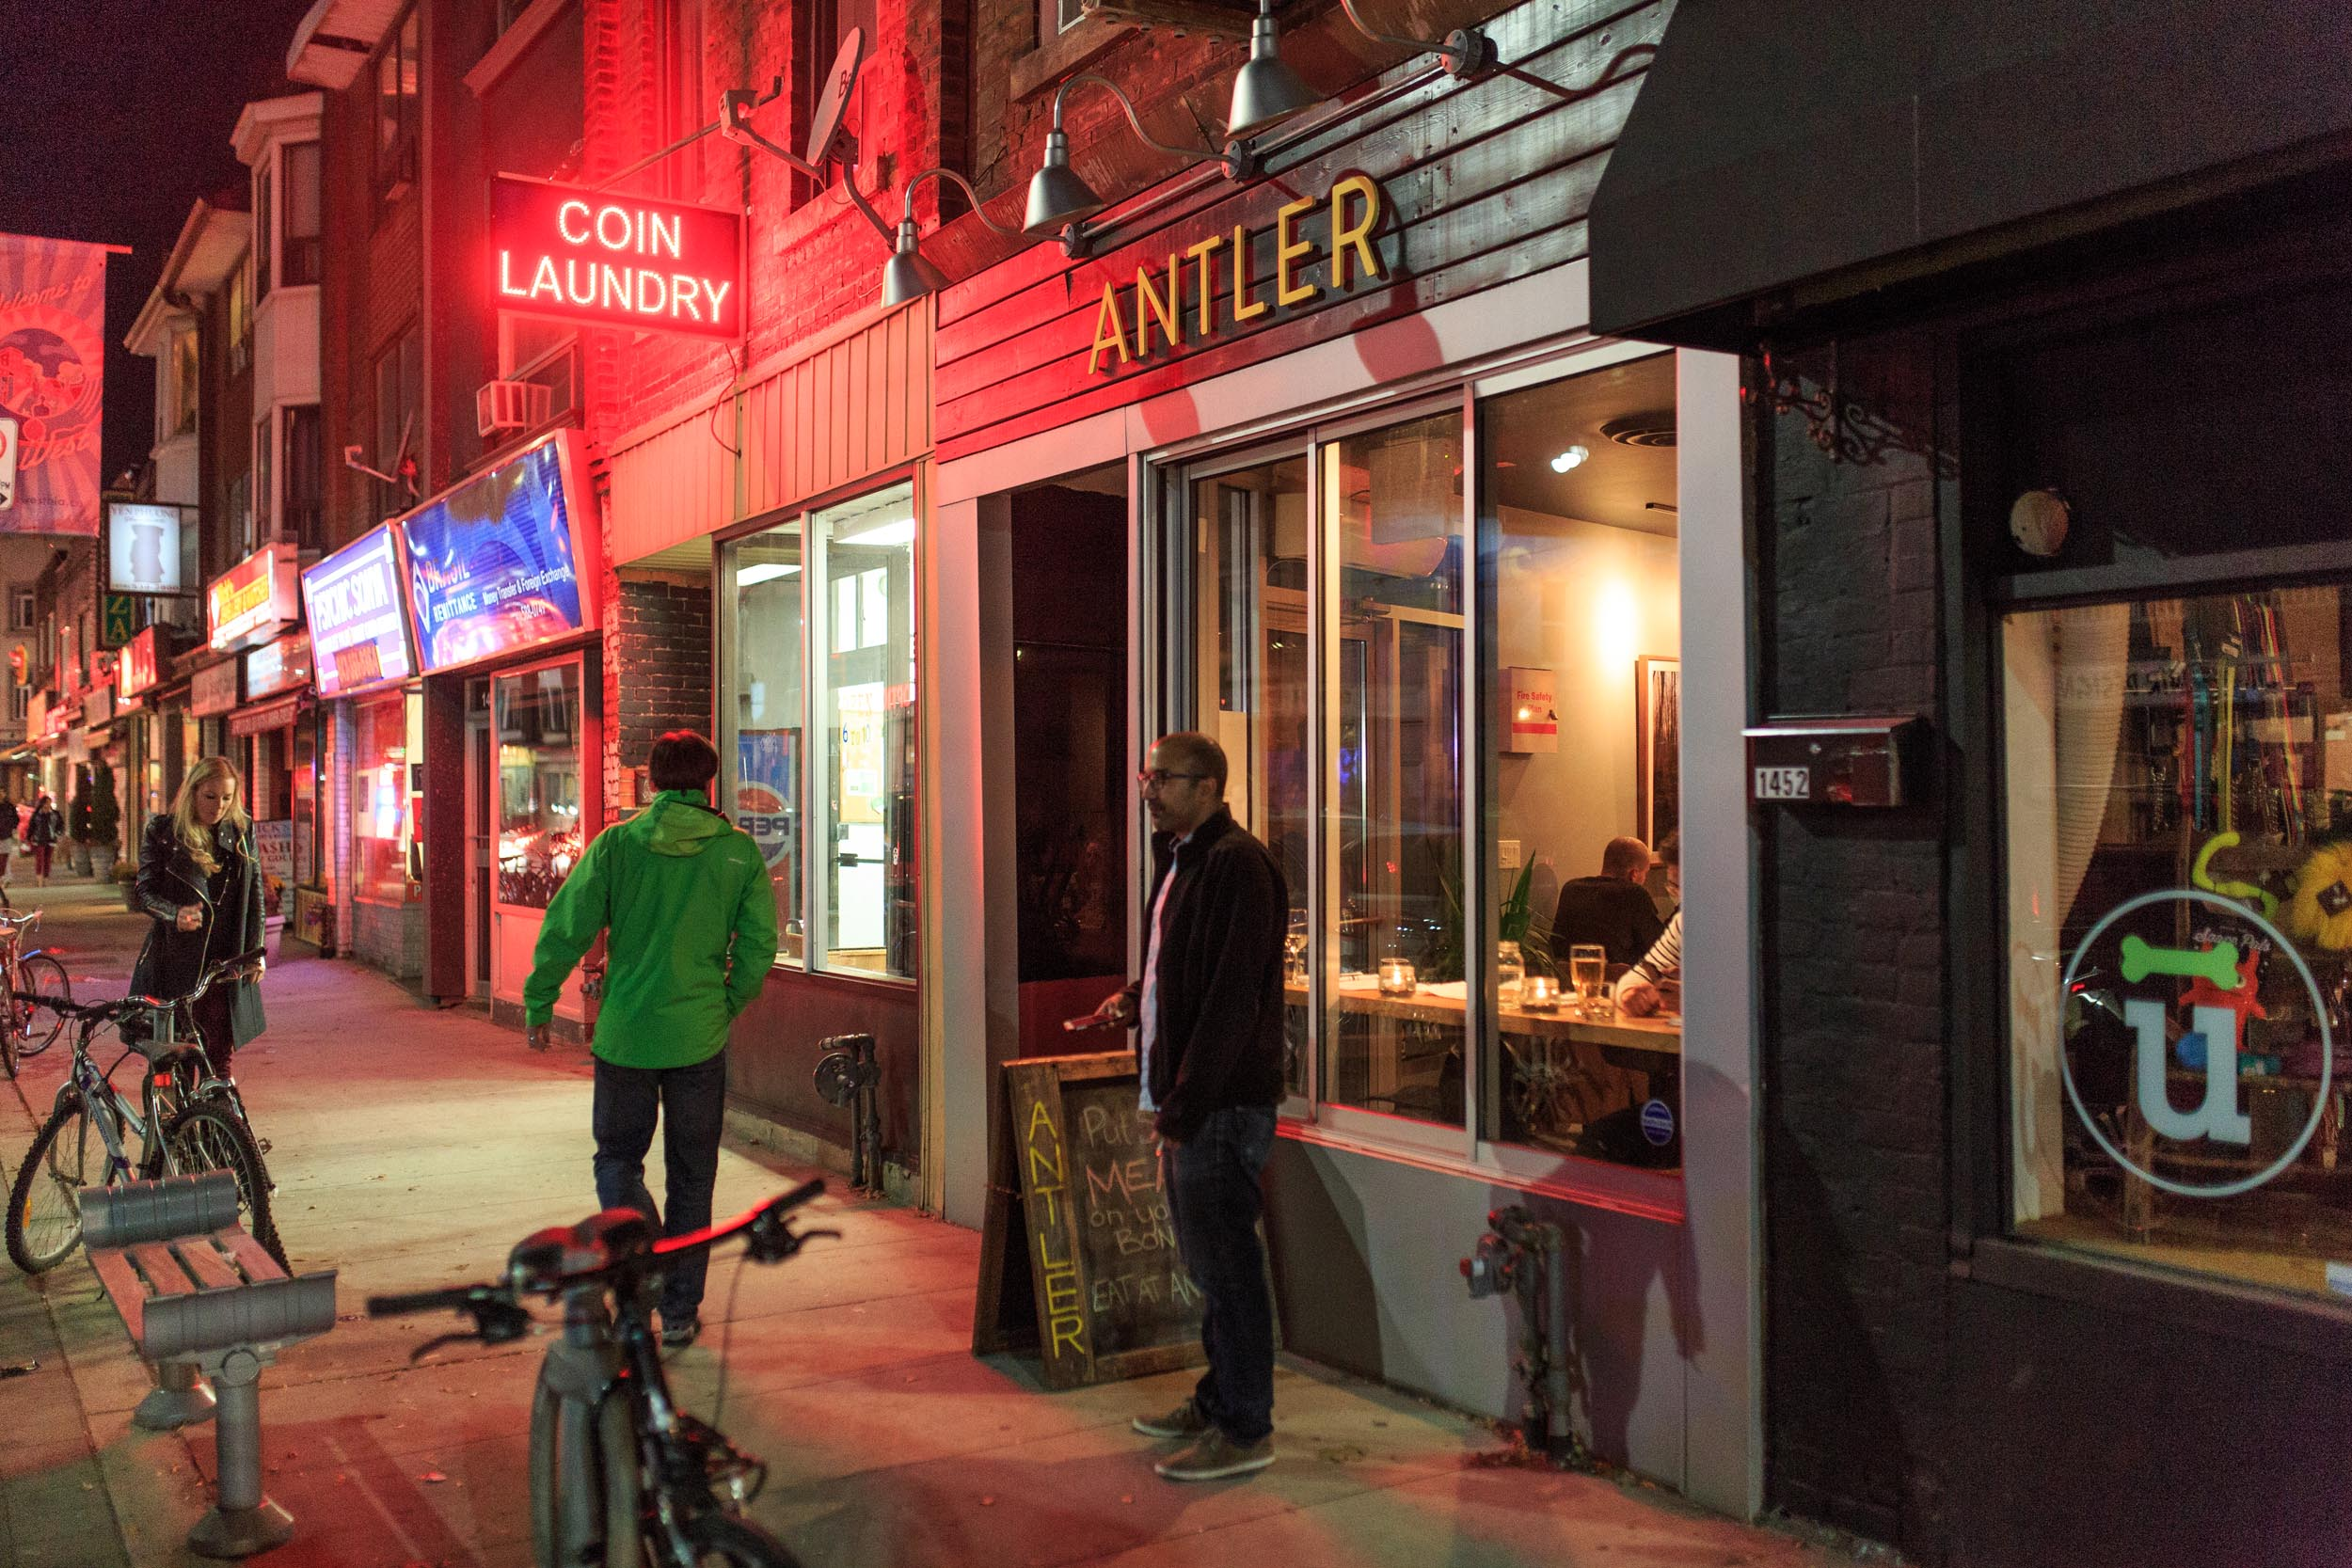 Exterior Photography of Antler Restaurant for New York Times